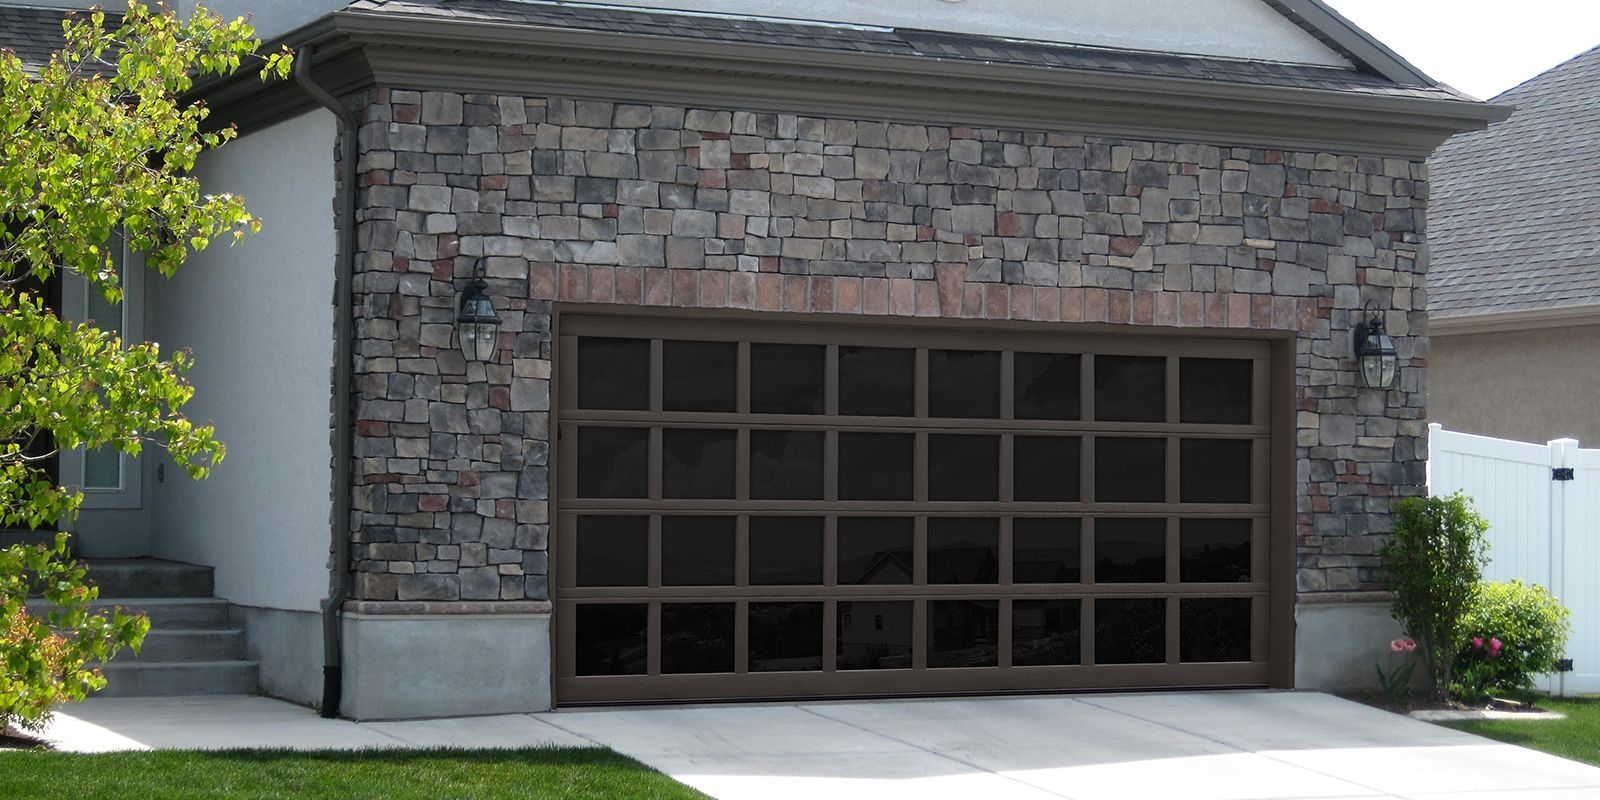 12 Foot Wide Glass Garage Door Garage Doors Martin Garage Doors Garage Door Panels